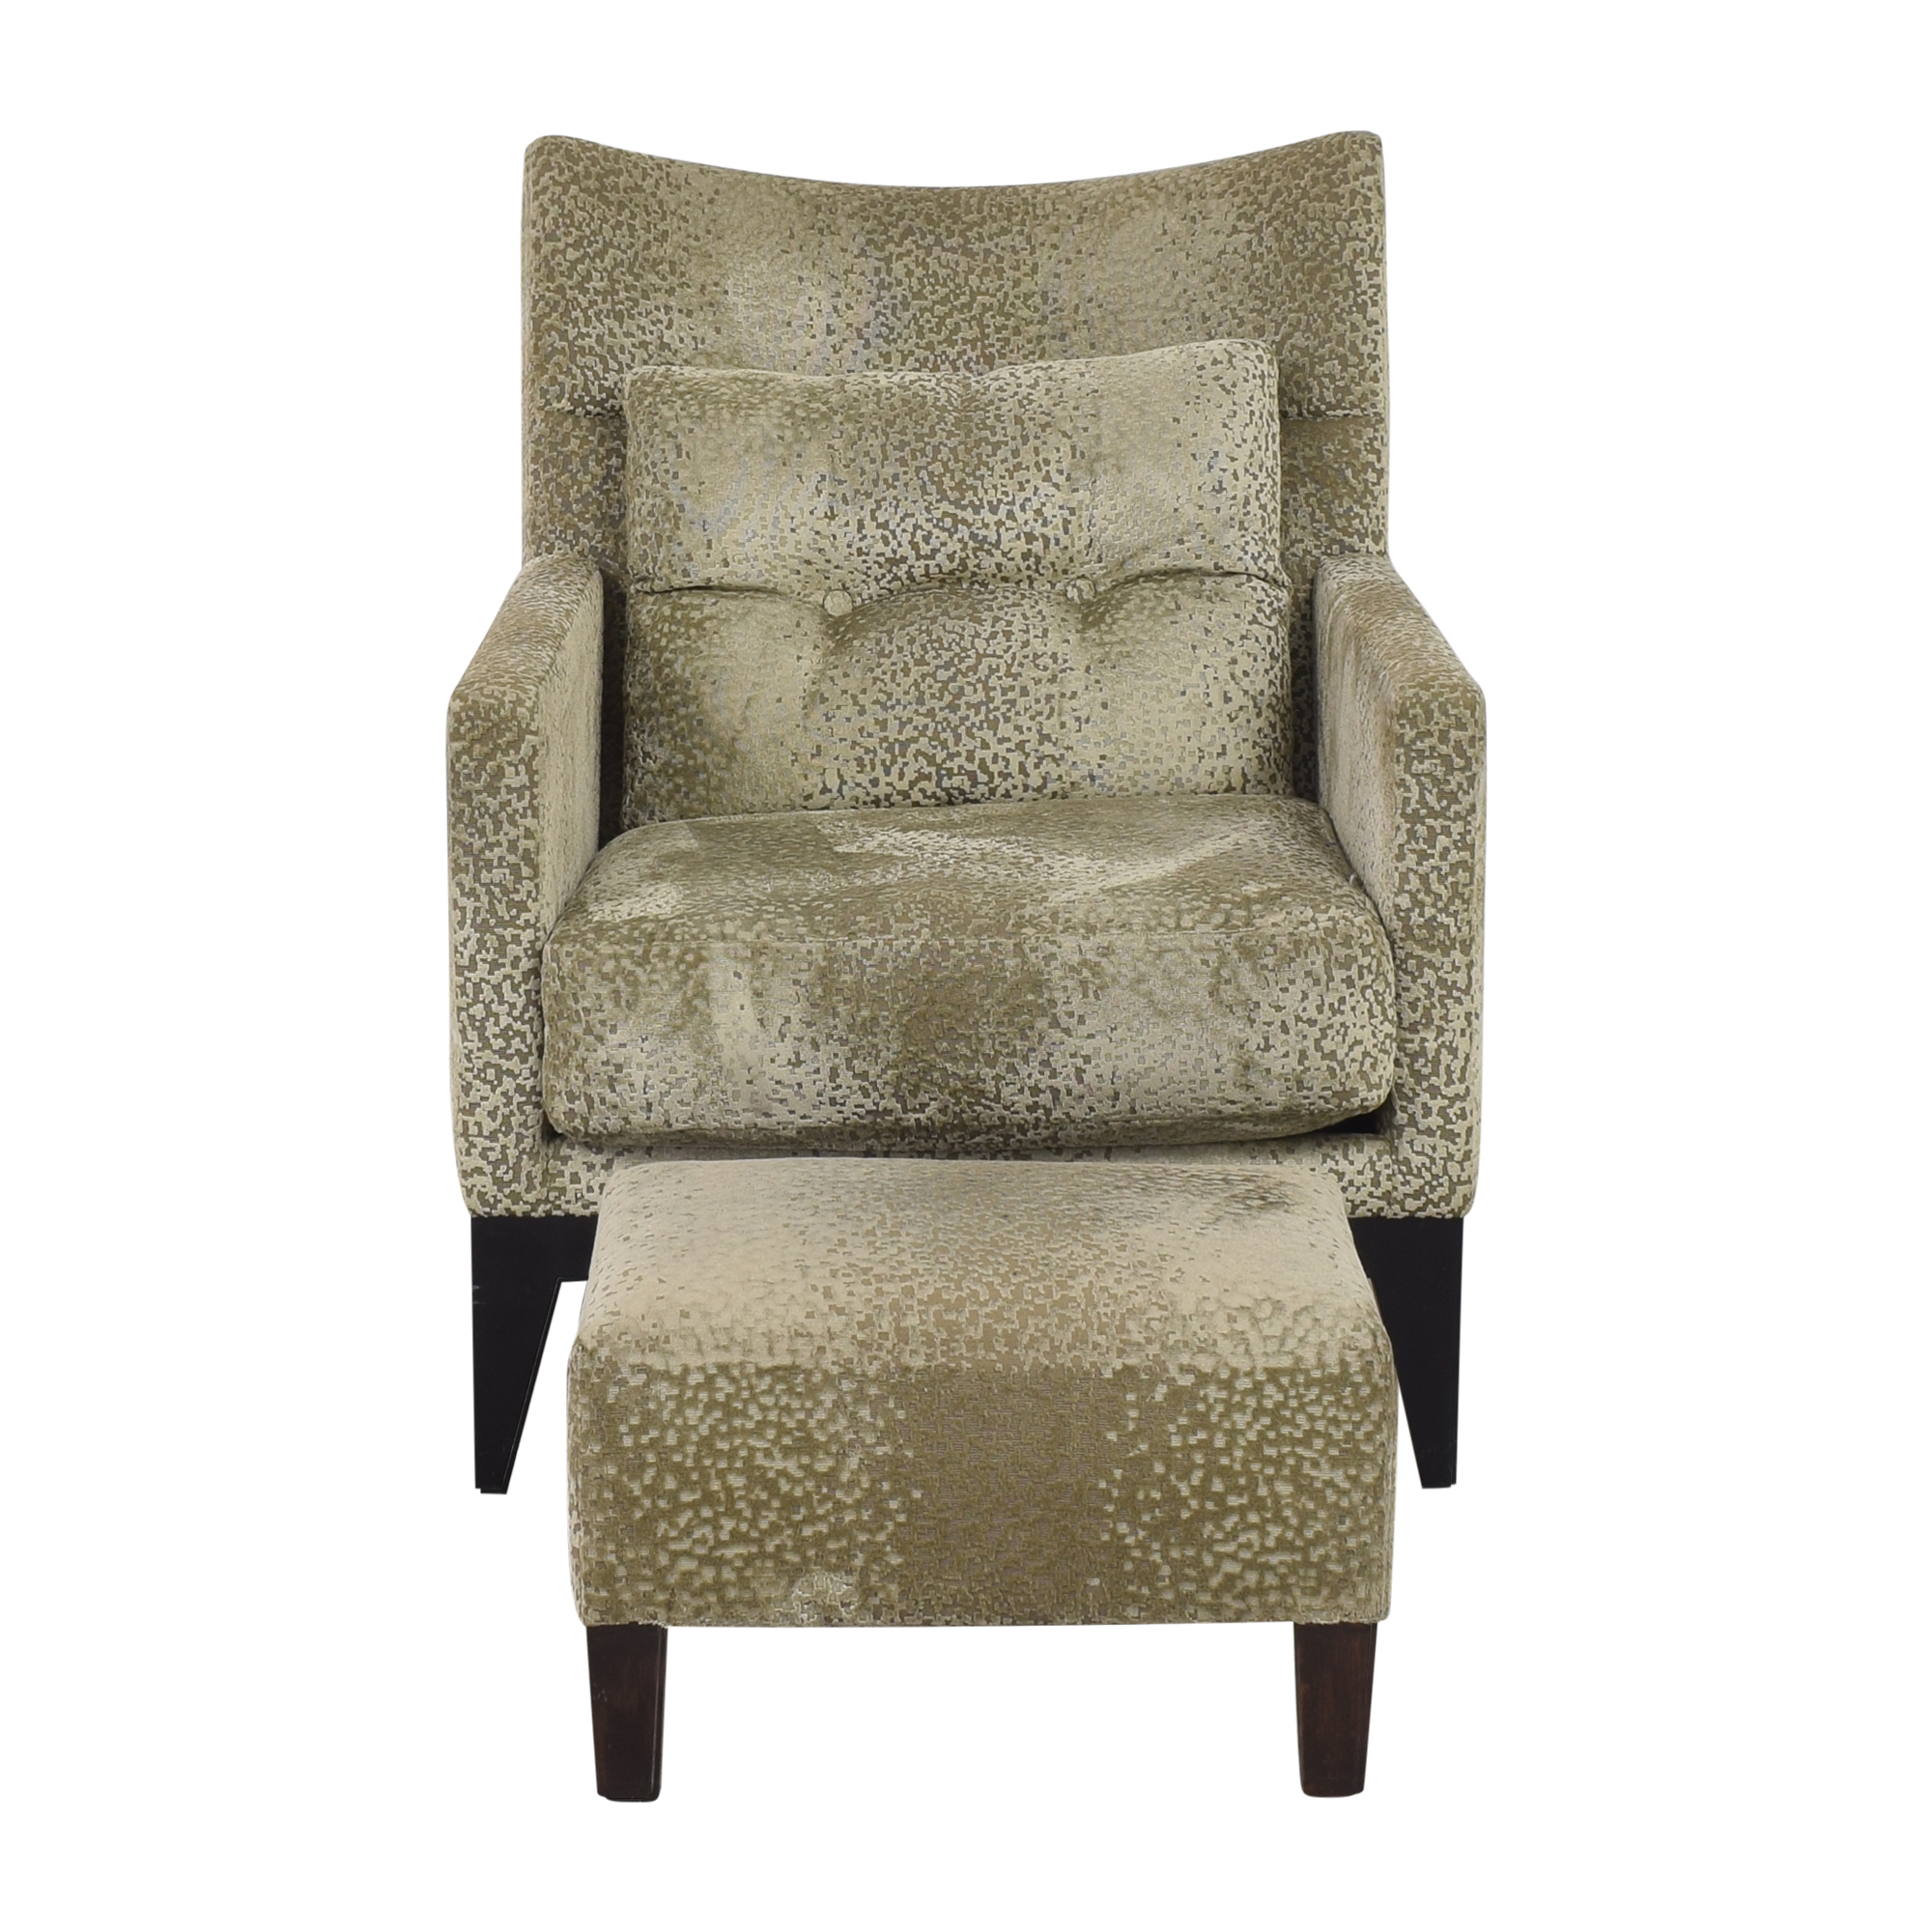 Accent Chair with Ottoman used